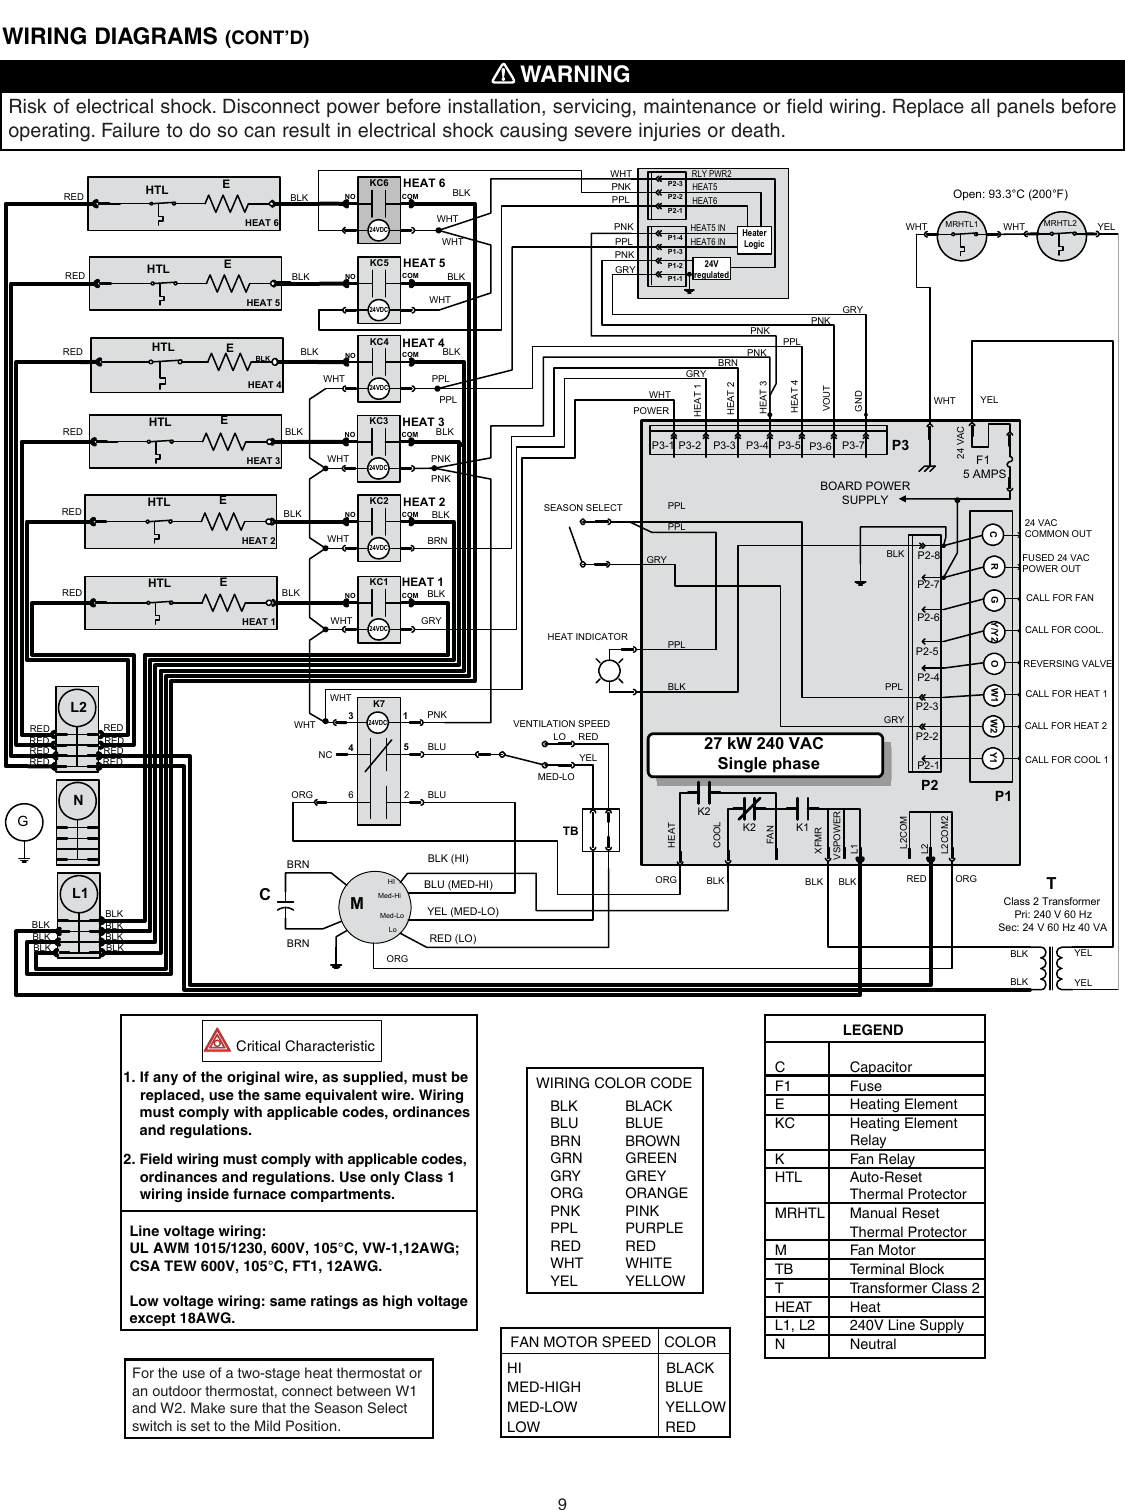 Wiring Diagram For Nortron Electric Furnace